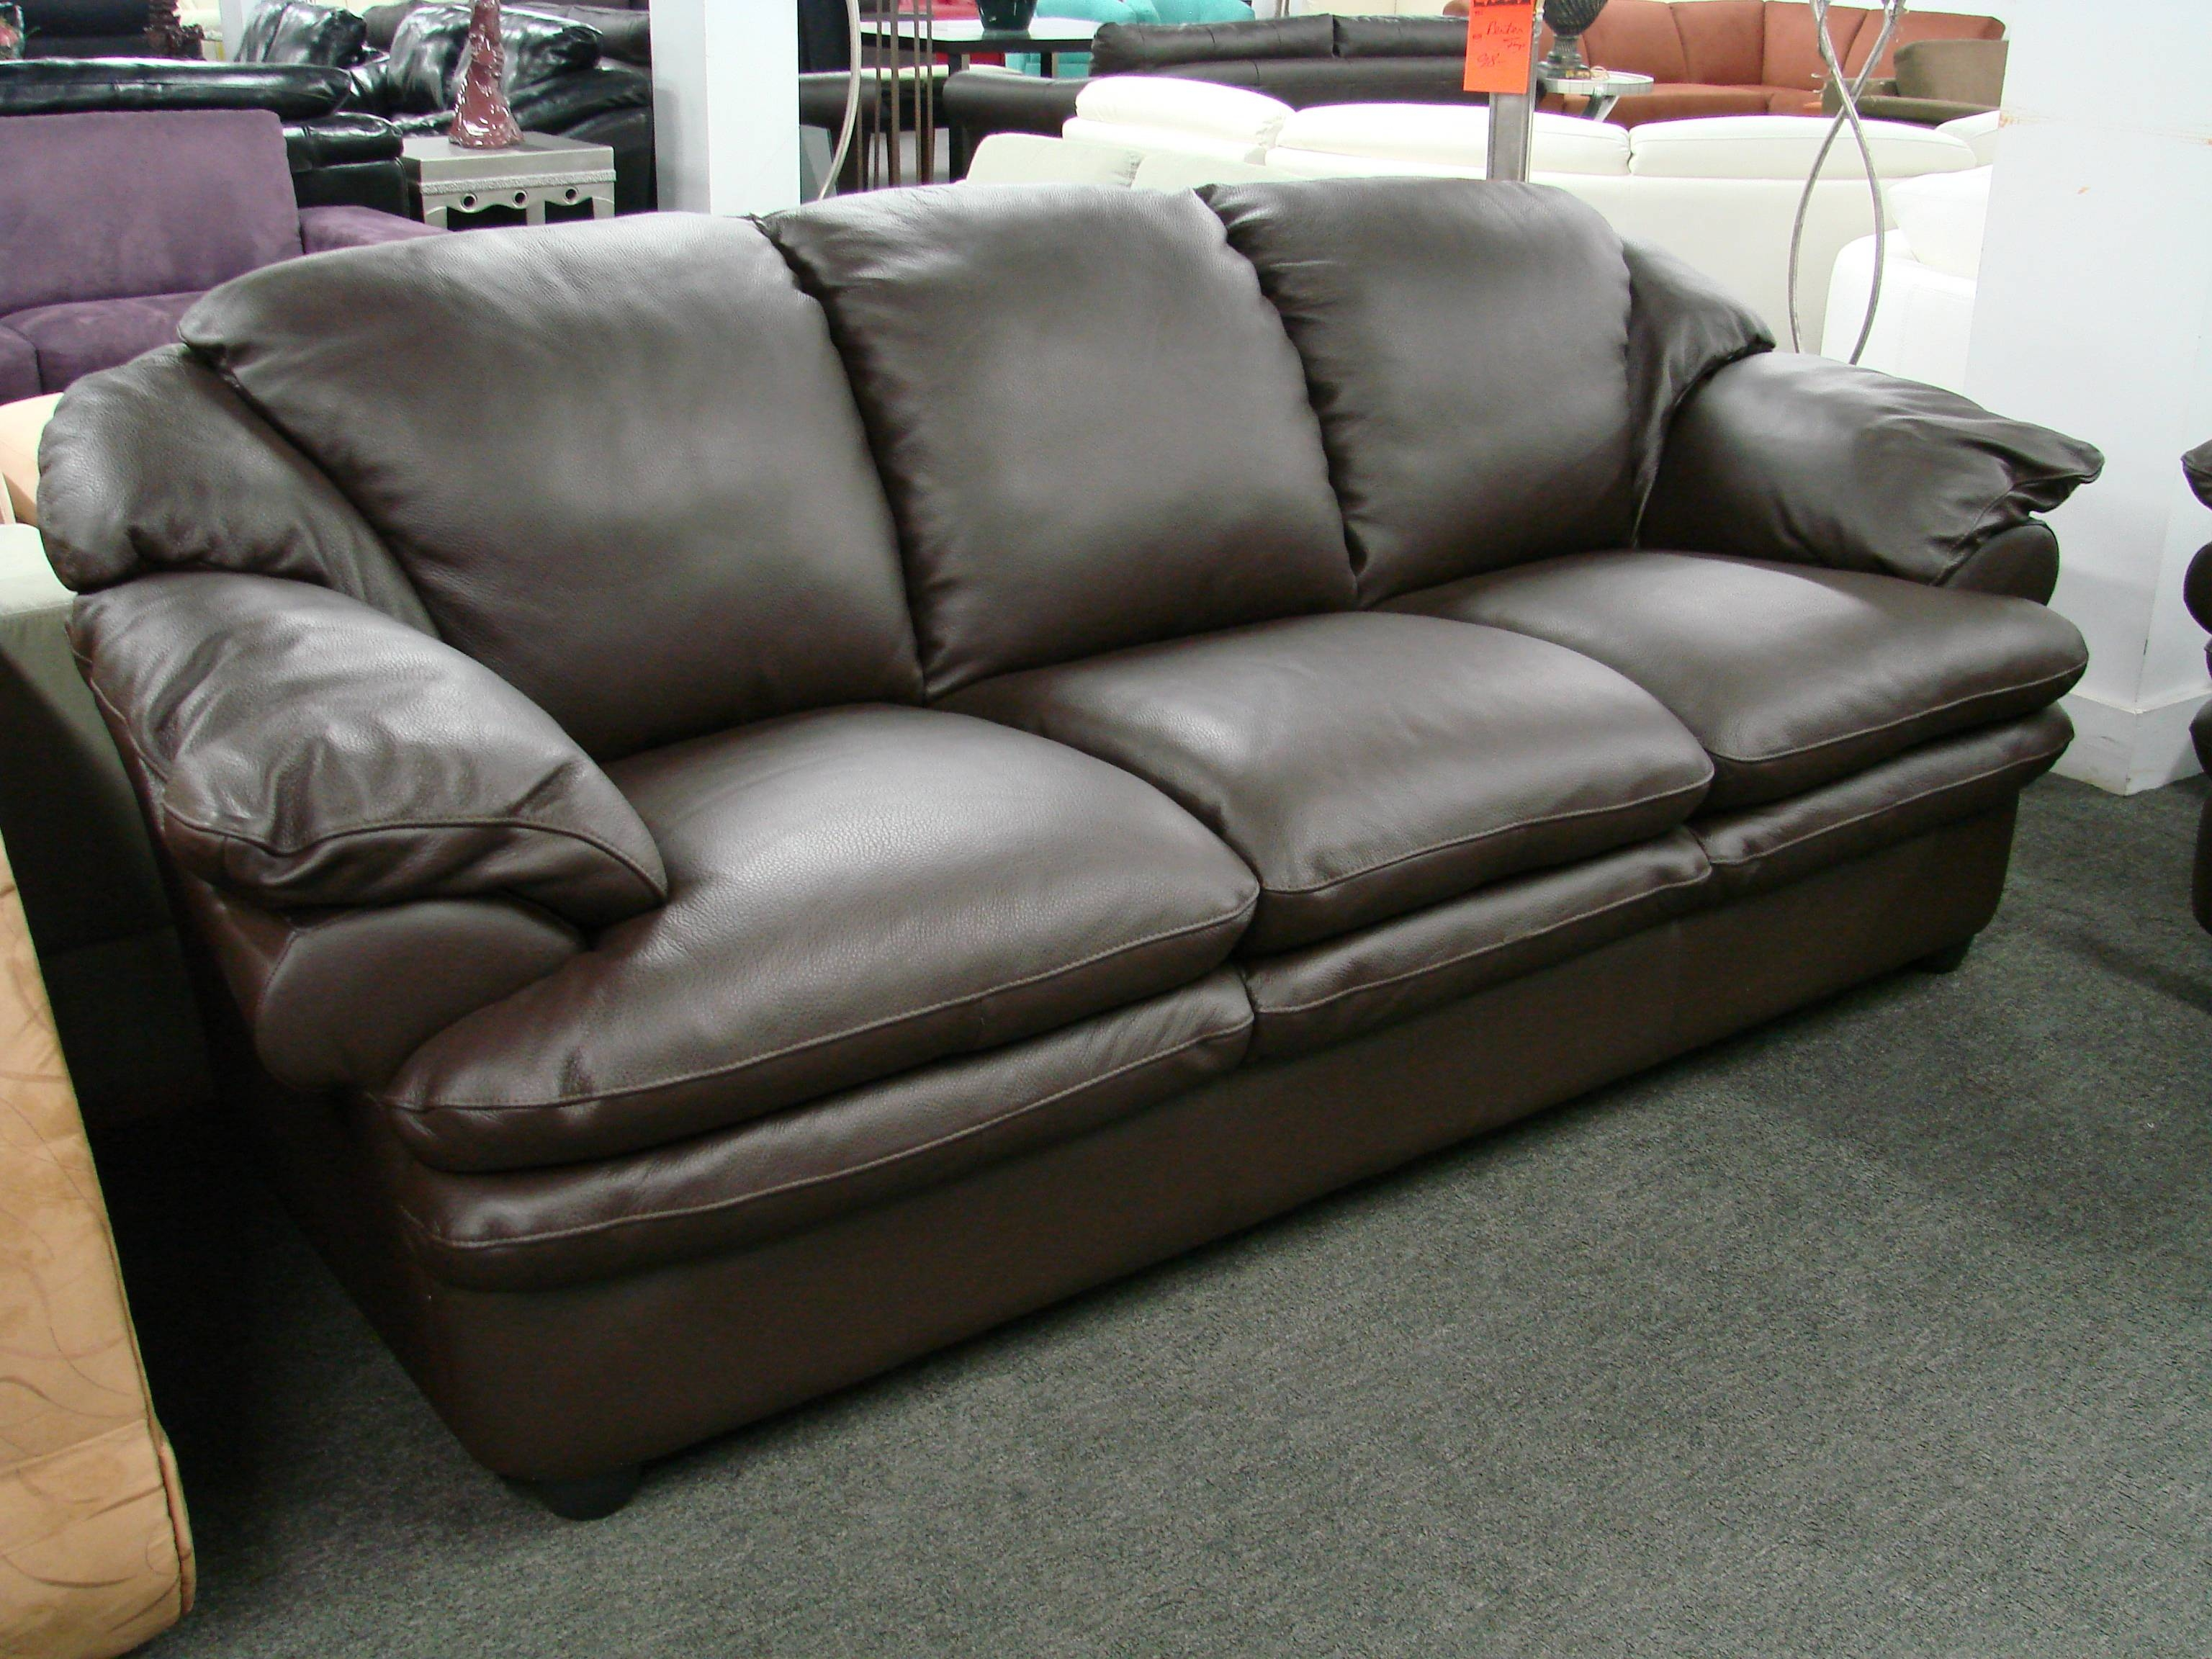 Furniture: Elegant Natuzzi Leather Couch For Living Room Furniture for Natuzzi Sleeper Sofas (Image 4 of 15)